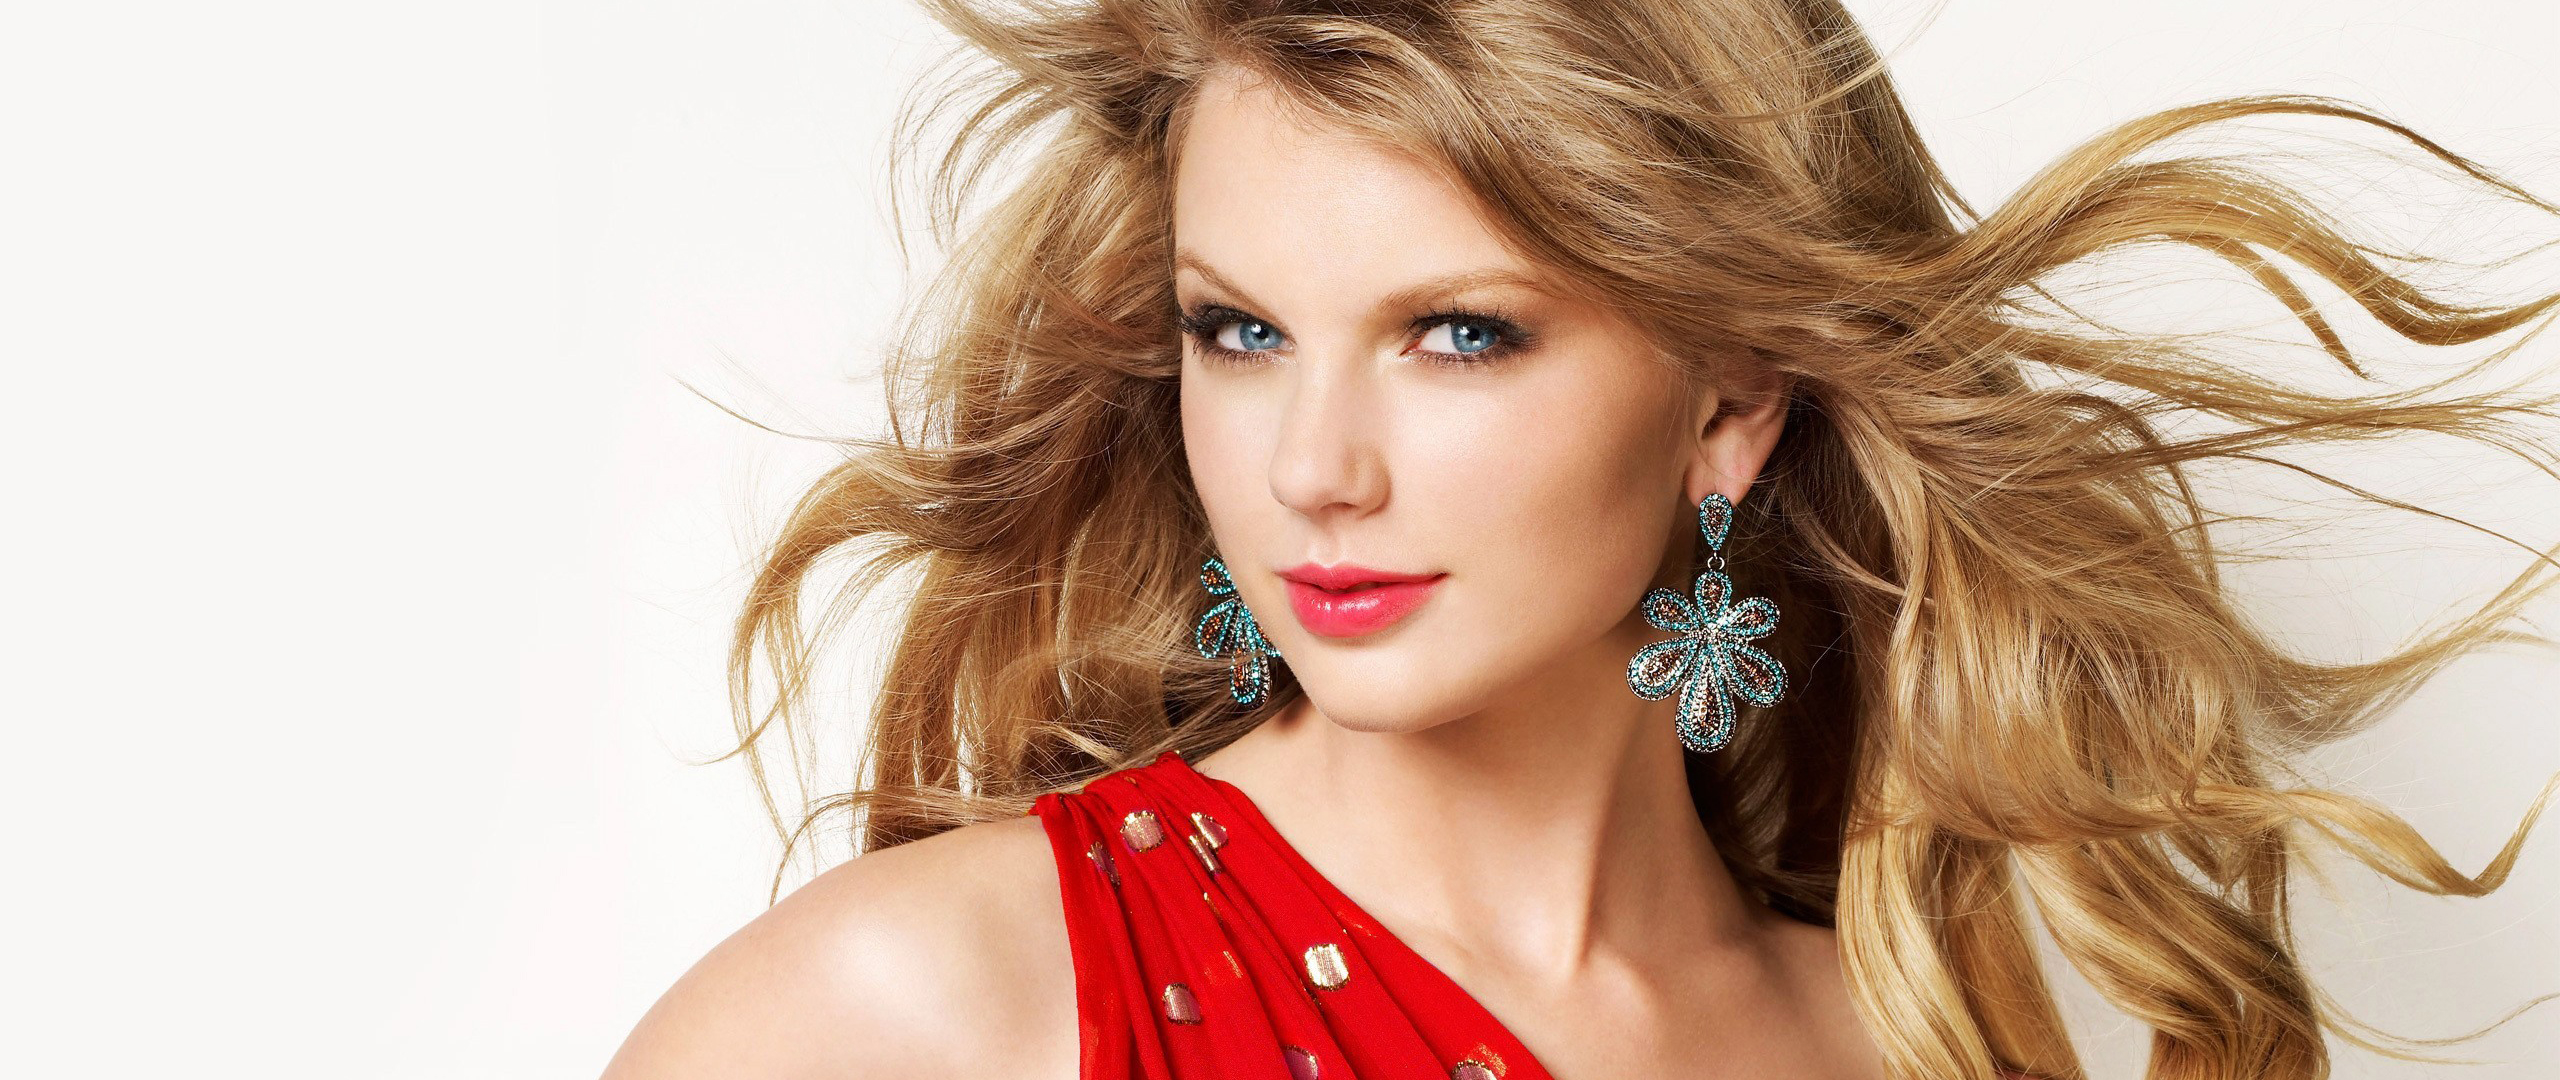 Download Taylor Swift Red Hot Photoshoot 1600x900